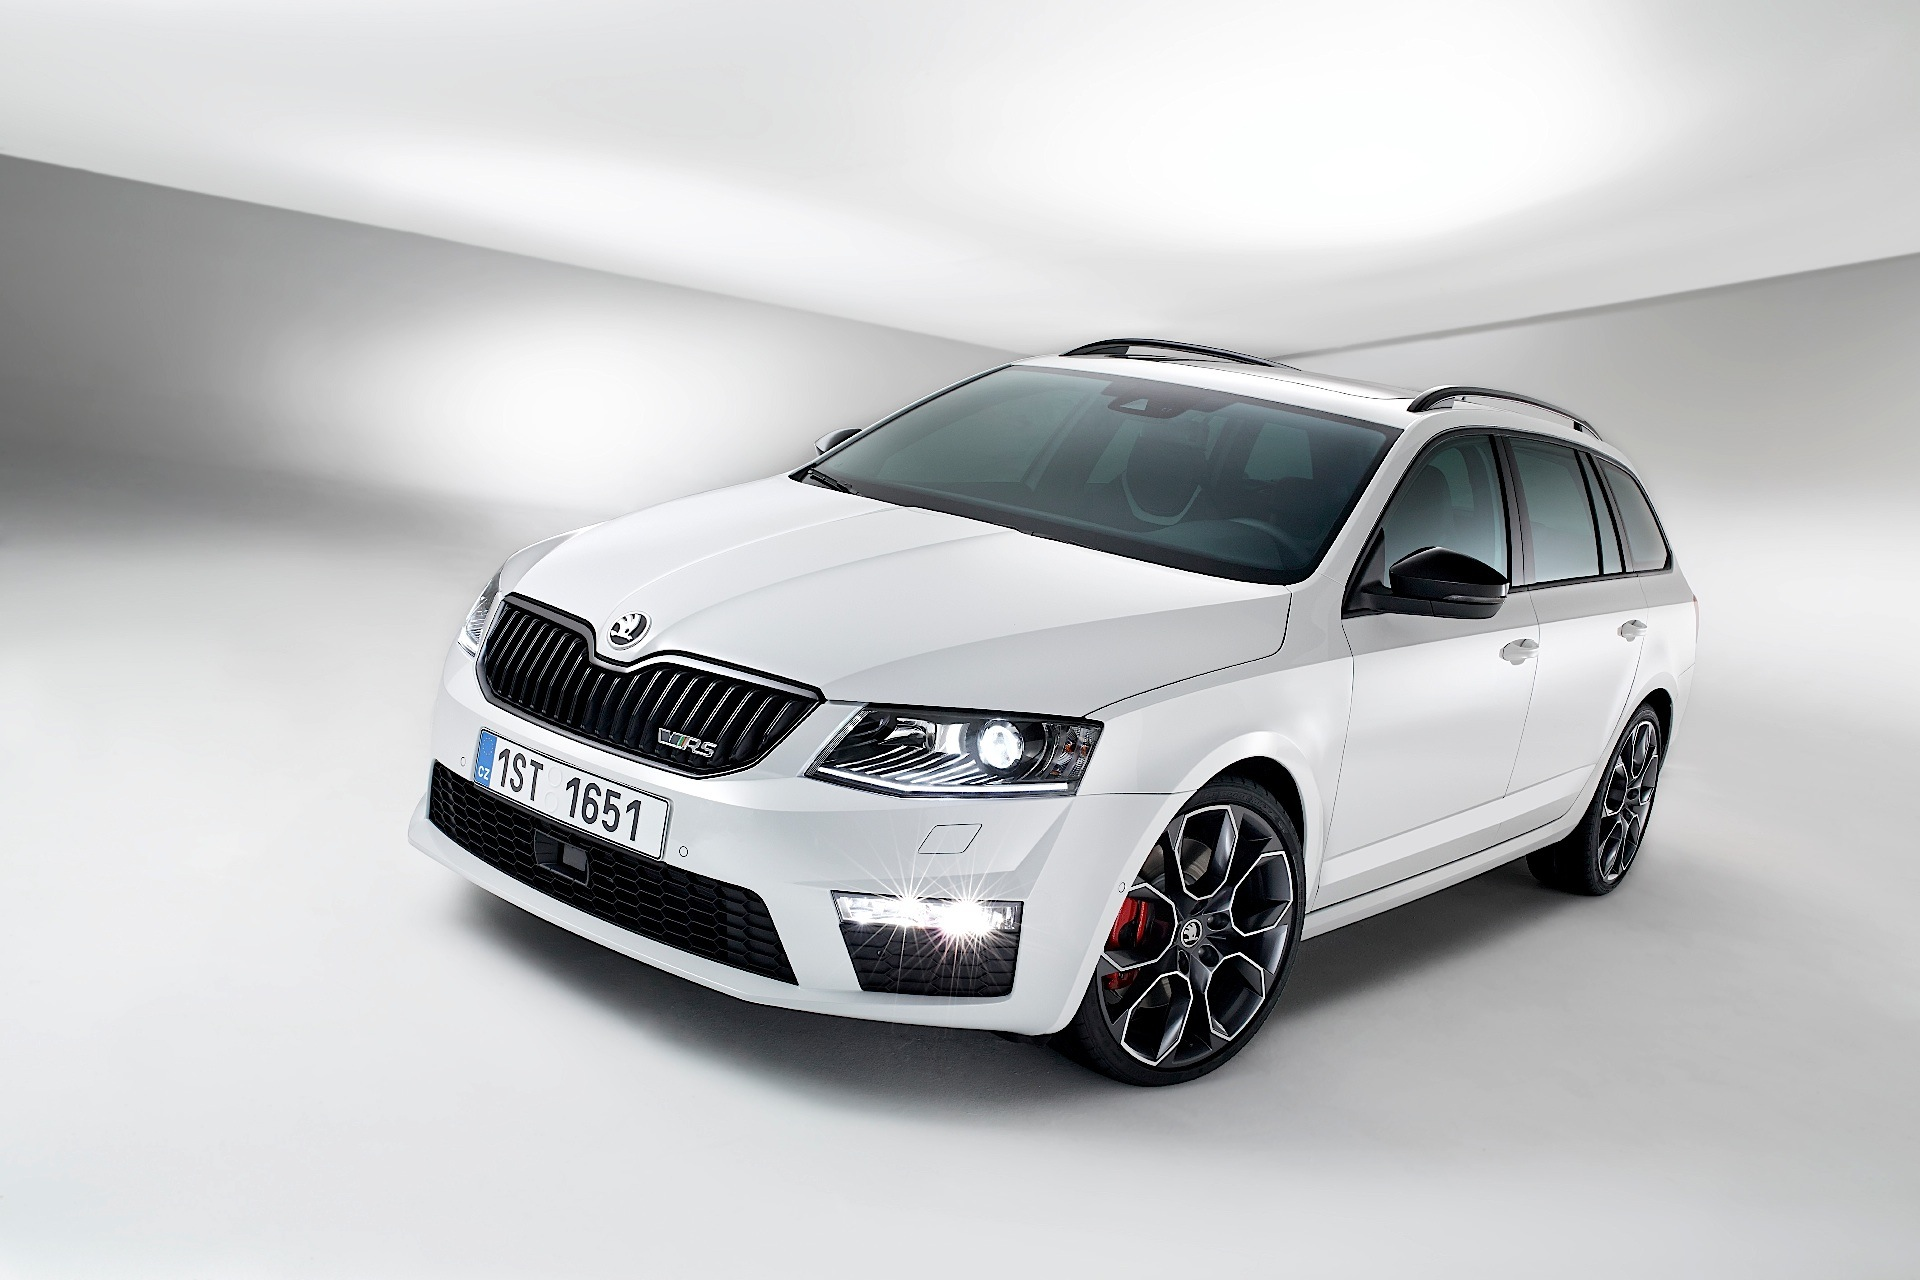 skoda octavia combi rs specs photos 2014 2015 2016 2017 autoevolution. Black Bedroom Furniture Sets. Home Design Ideas